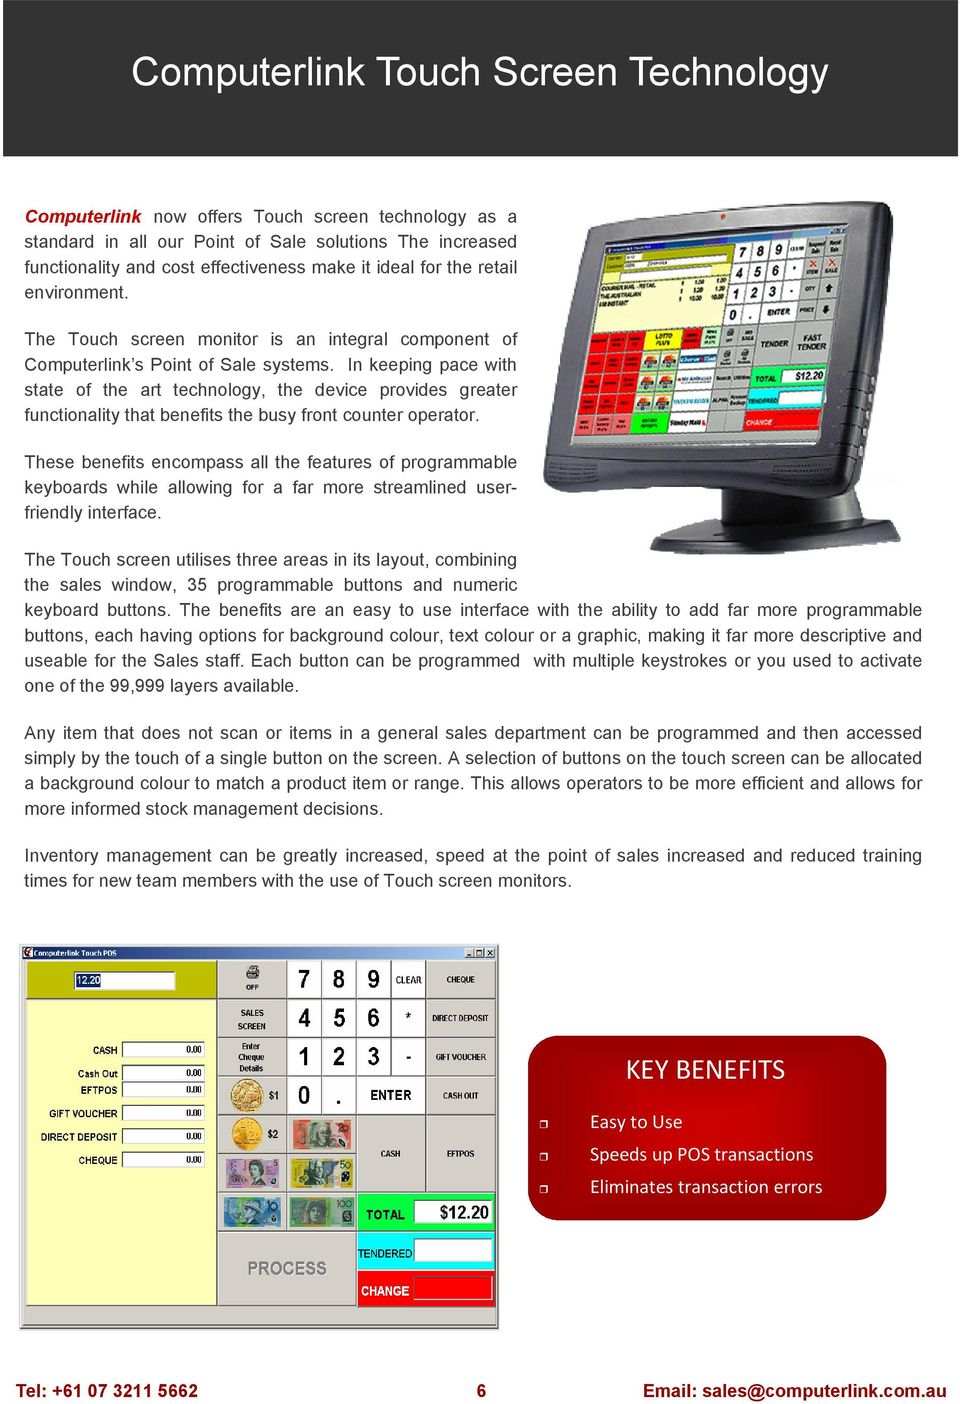 In keeping pace with state of the art technology, the device provides greater functionality that benefits the busy front counter operator.